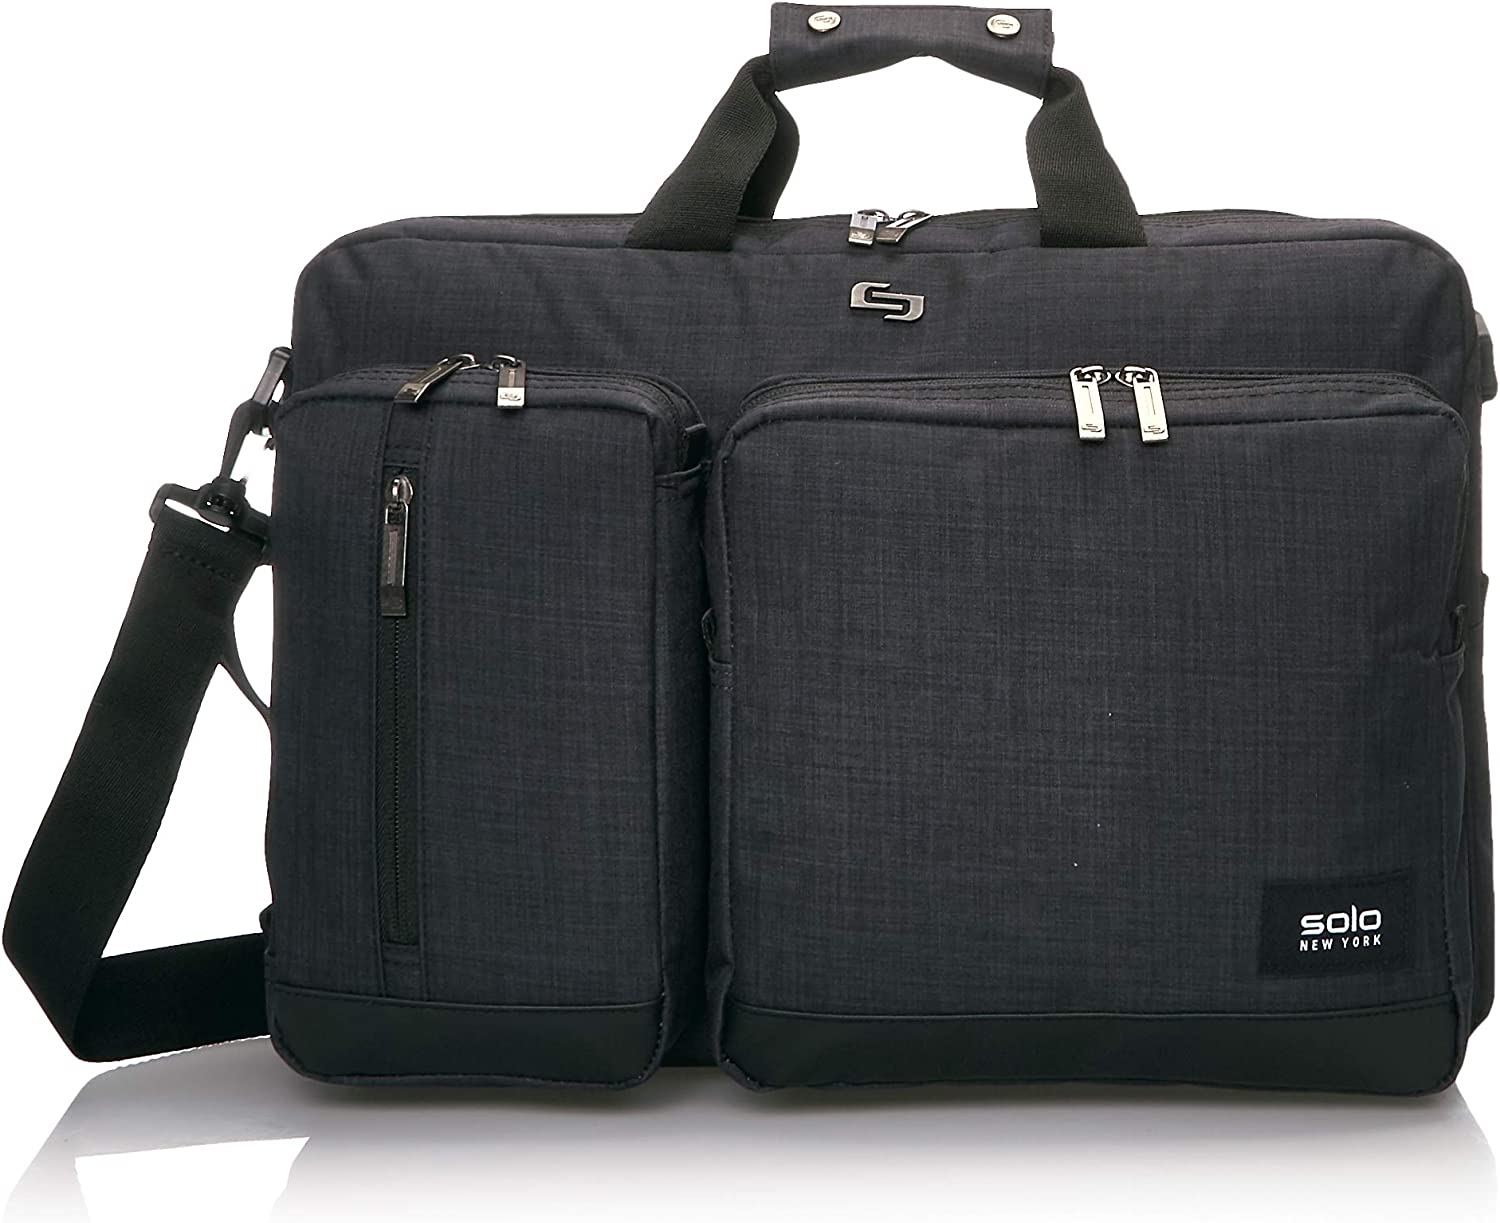 Solo New York Duane 15.6 Inch Laptop Hybrid Briefcase Backpack, Indigo, One Size